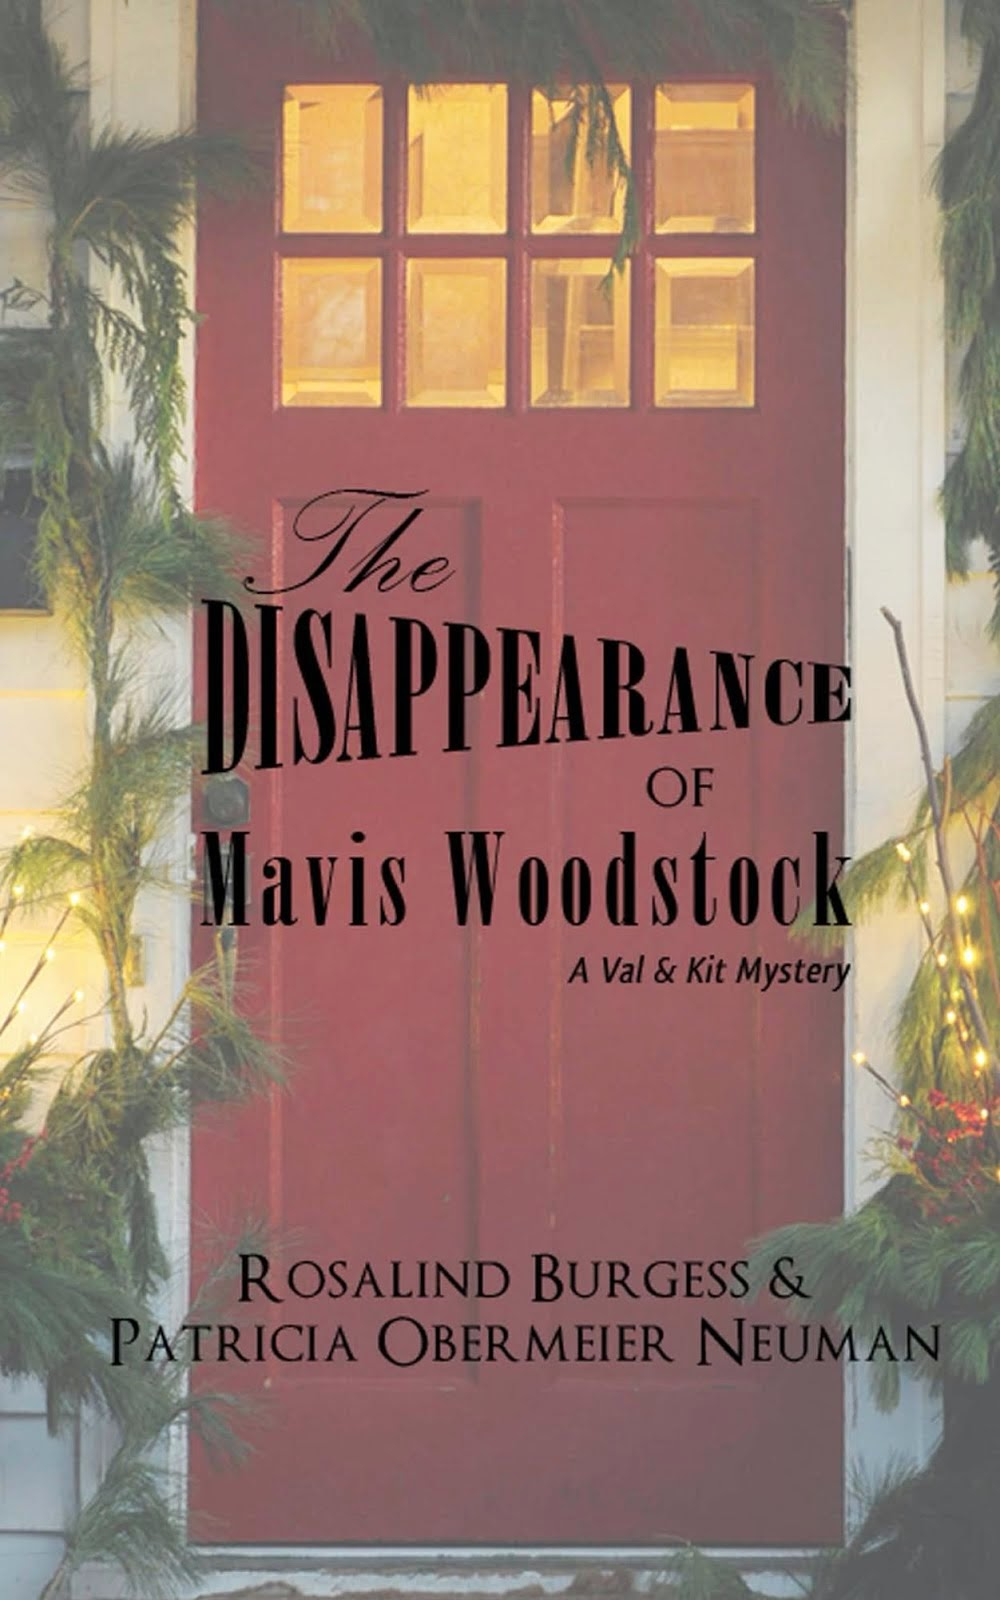 The Disappearance of Mavis Woodstock